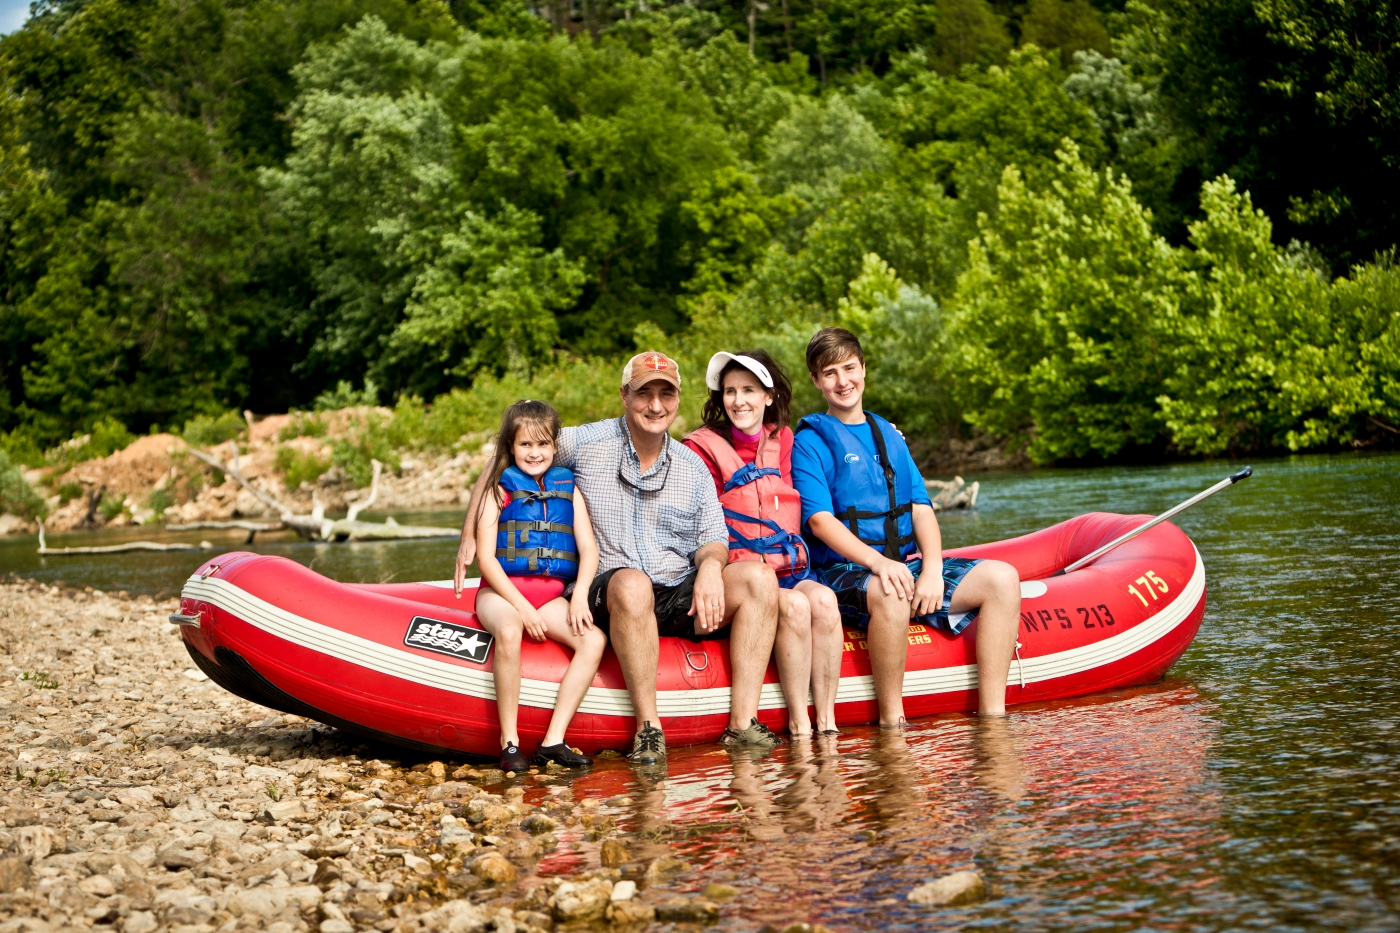 Reconnect with loved ones and enjoy the great outdoors with an excursion on one of Missouri's 59 floatable rivers and streams.